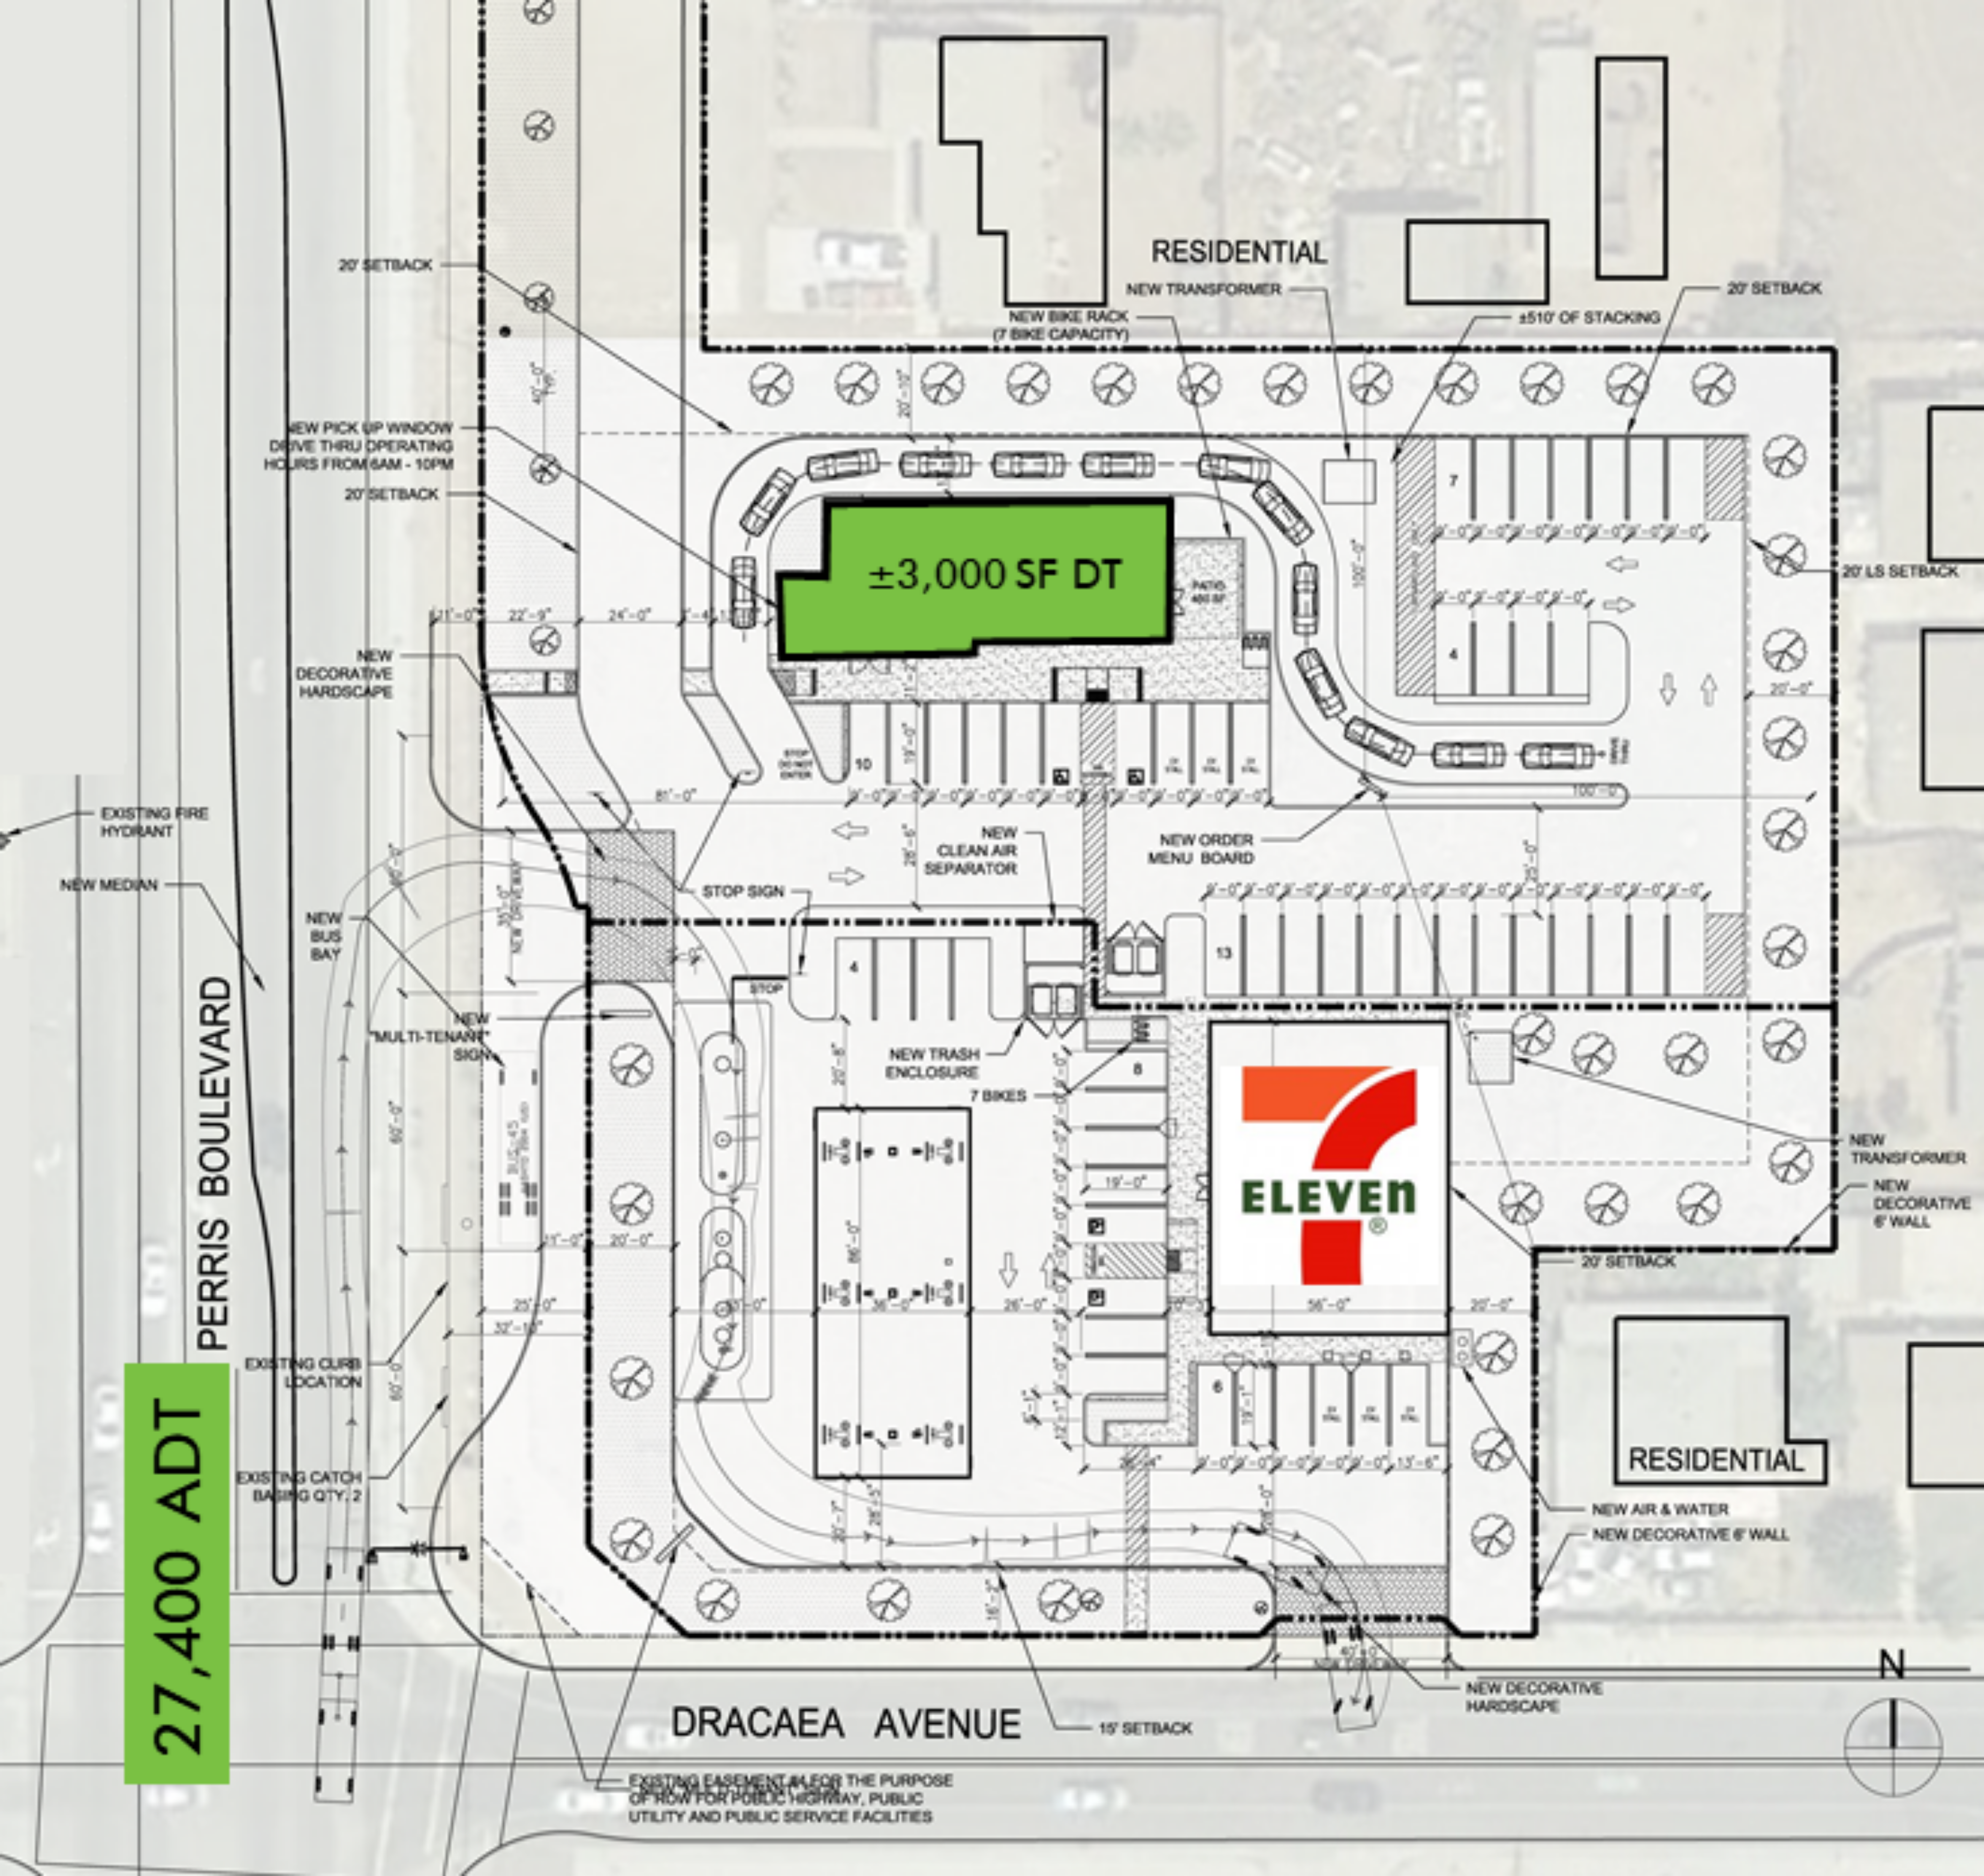 Moreno Valley-25064 Dracaea Ave-DT Pad Available: site plan